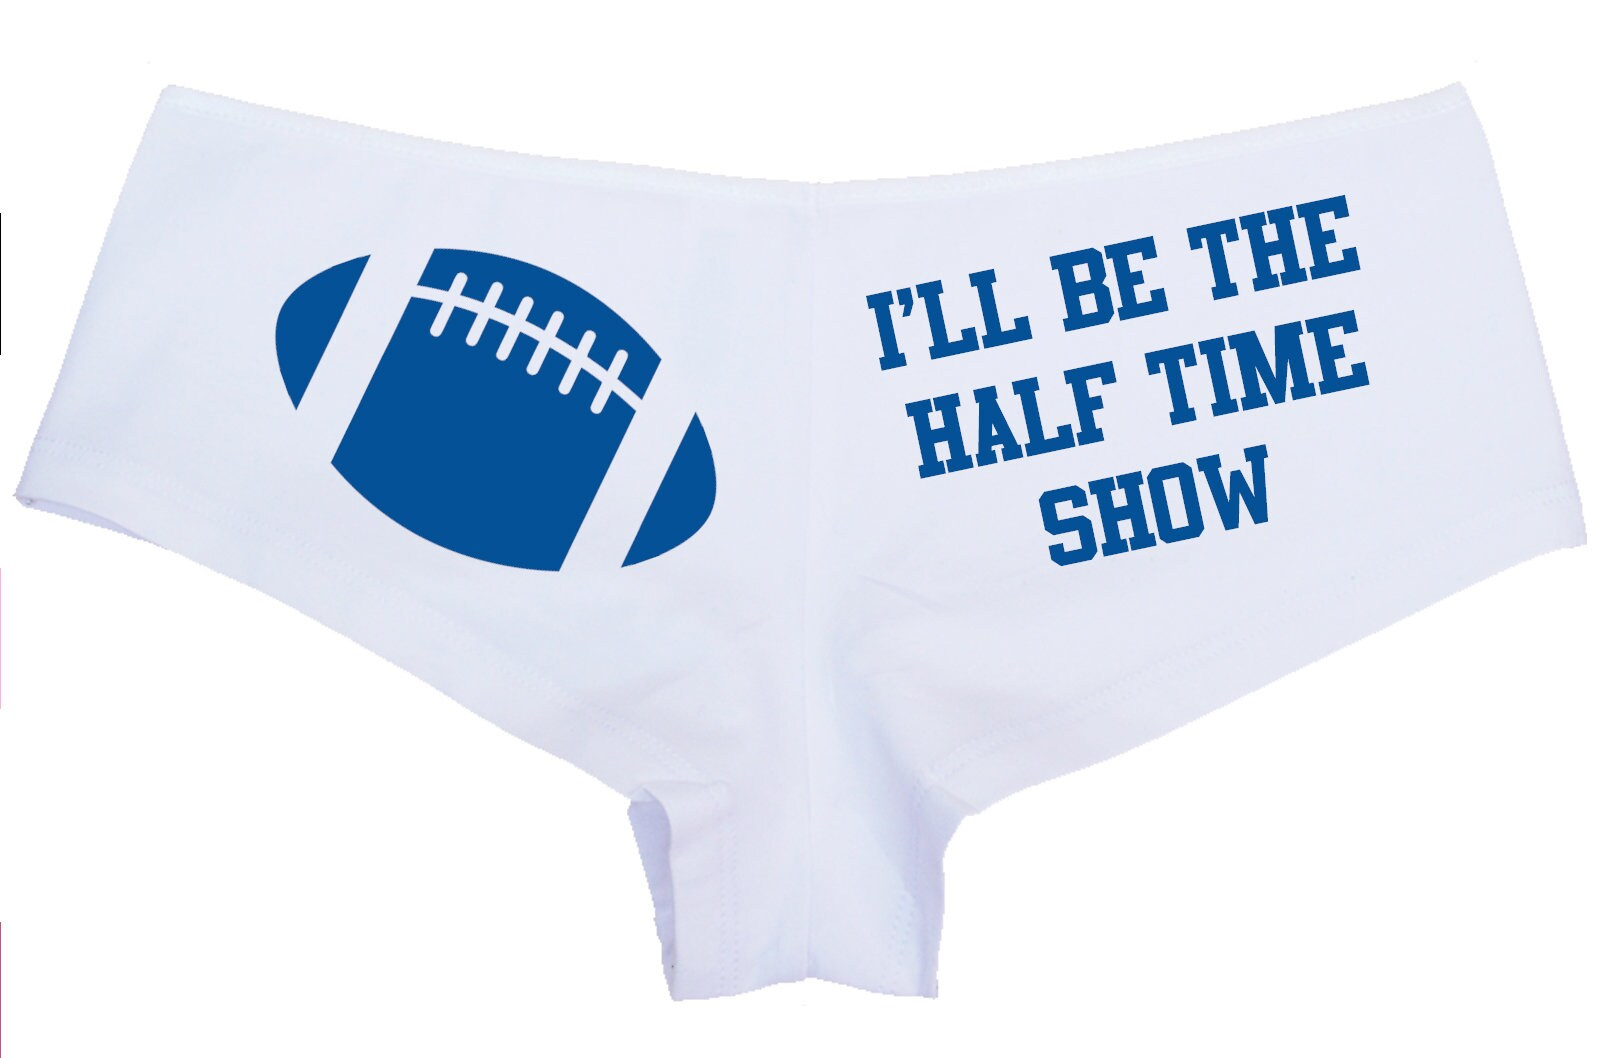 ill be the half time show flirty black boyshort underwear boy short panties pro college football team colors panty game bridal shower party